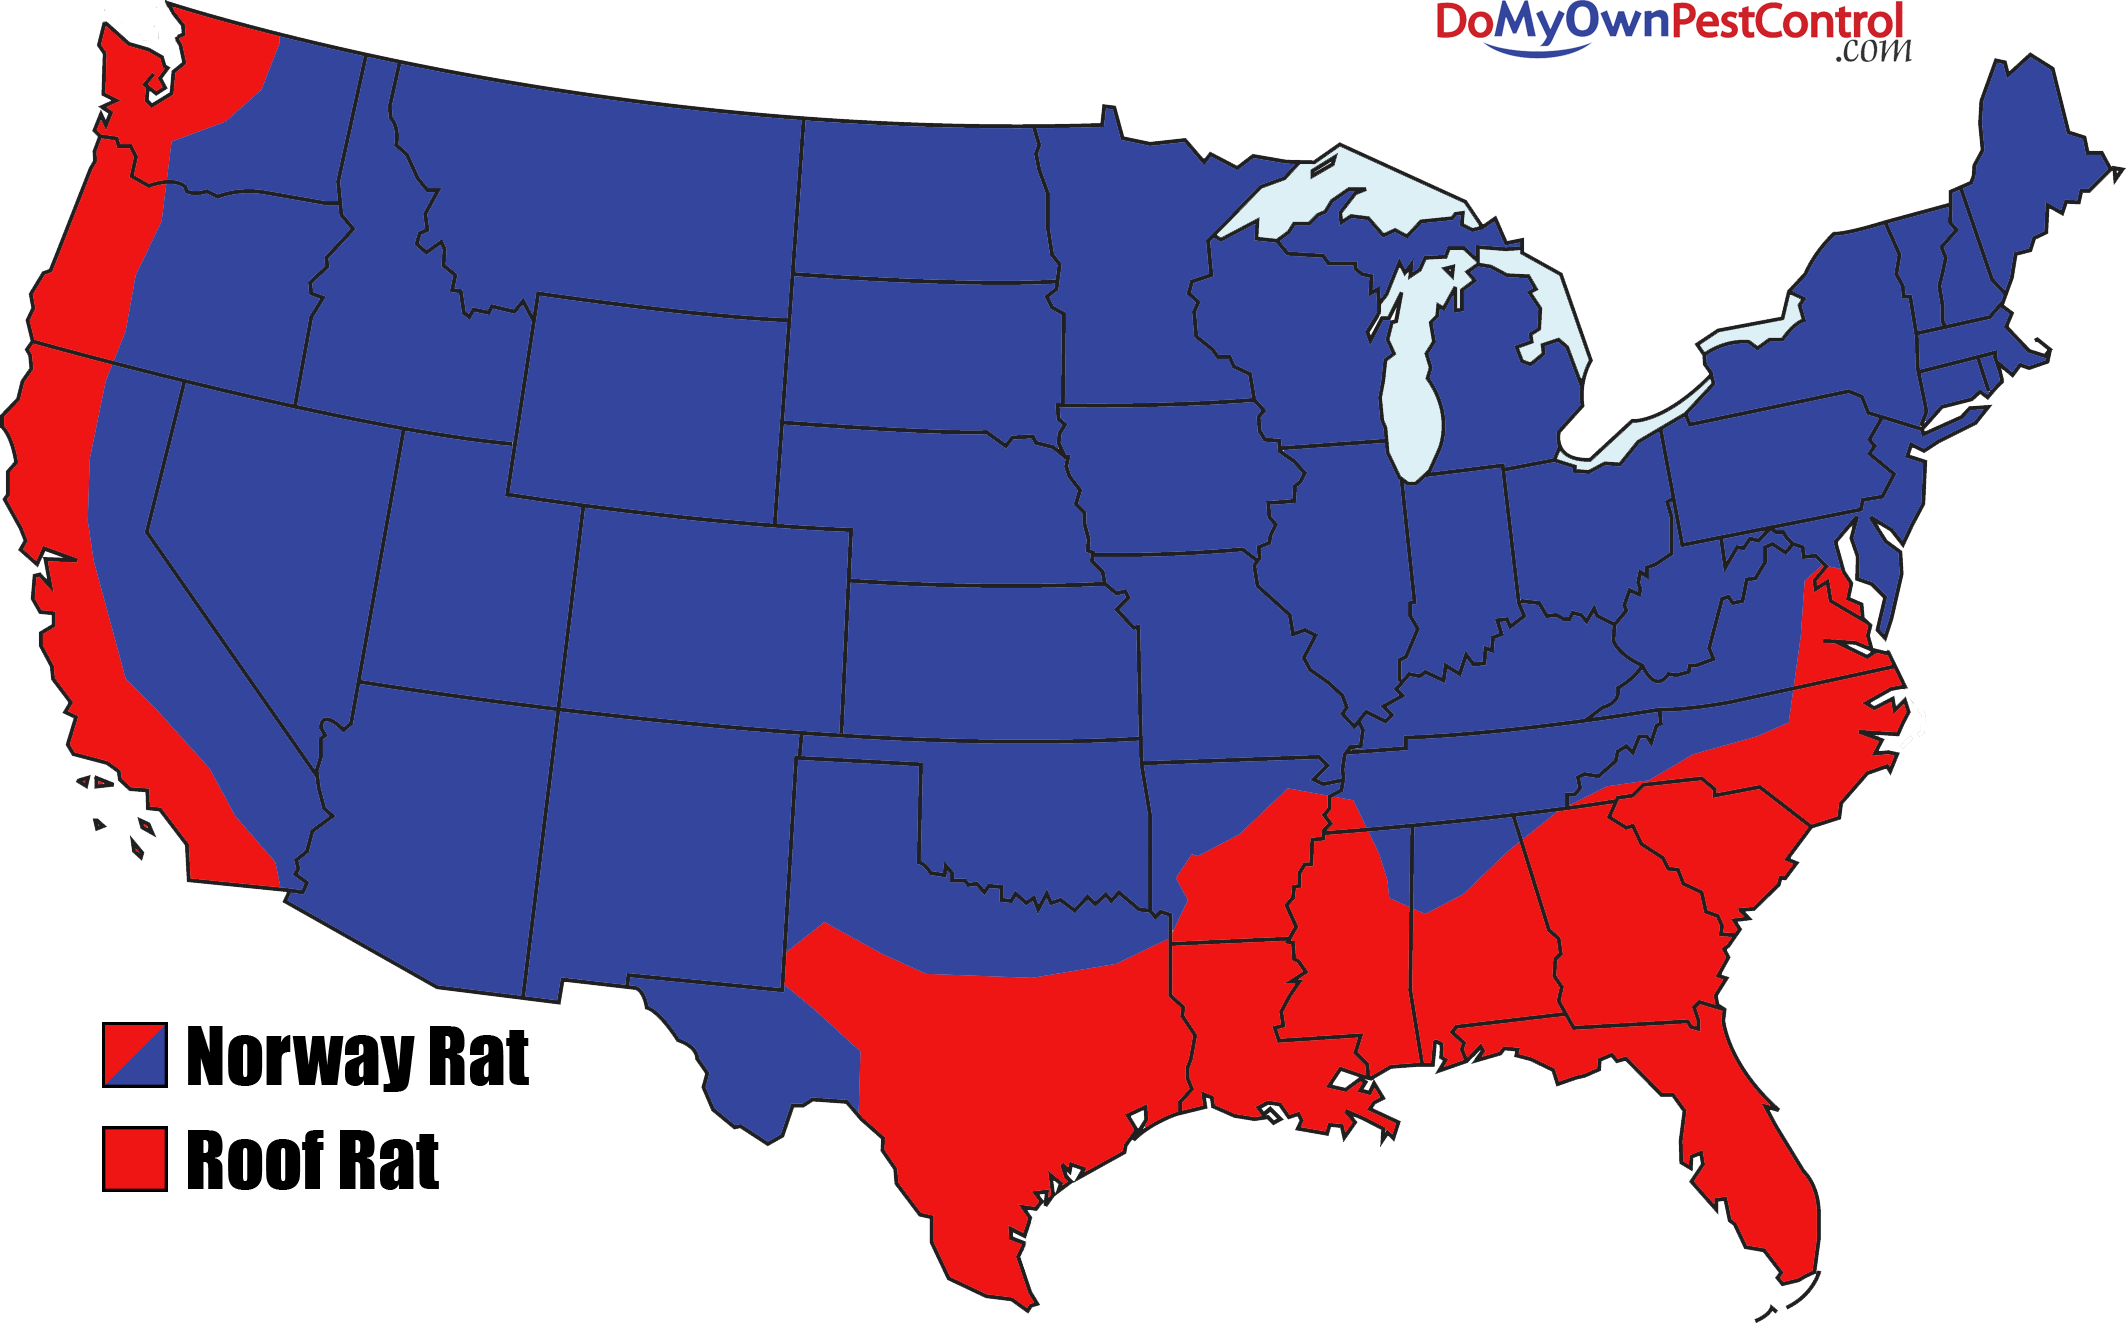 All About Rats Types Of Rats Locations And History Rat Facts - Map Us Election Results